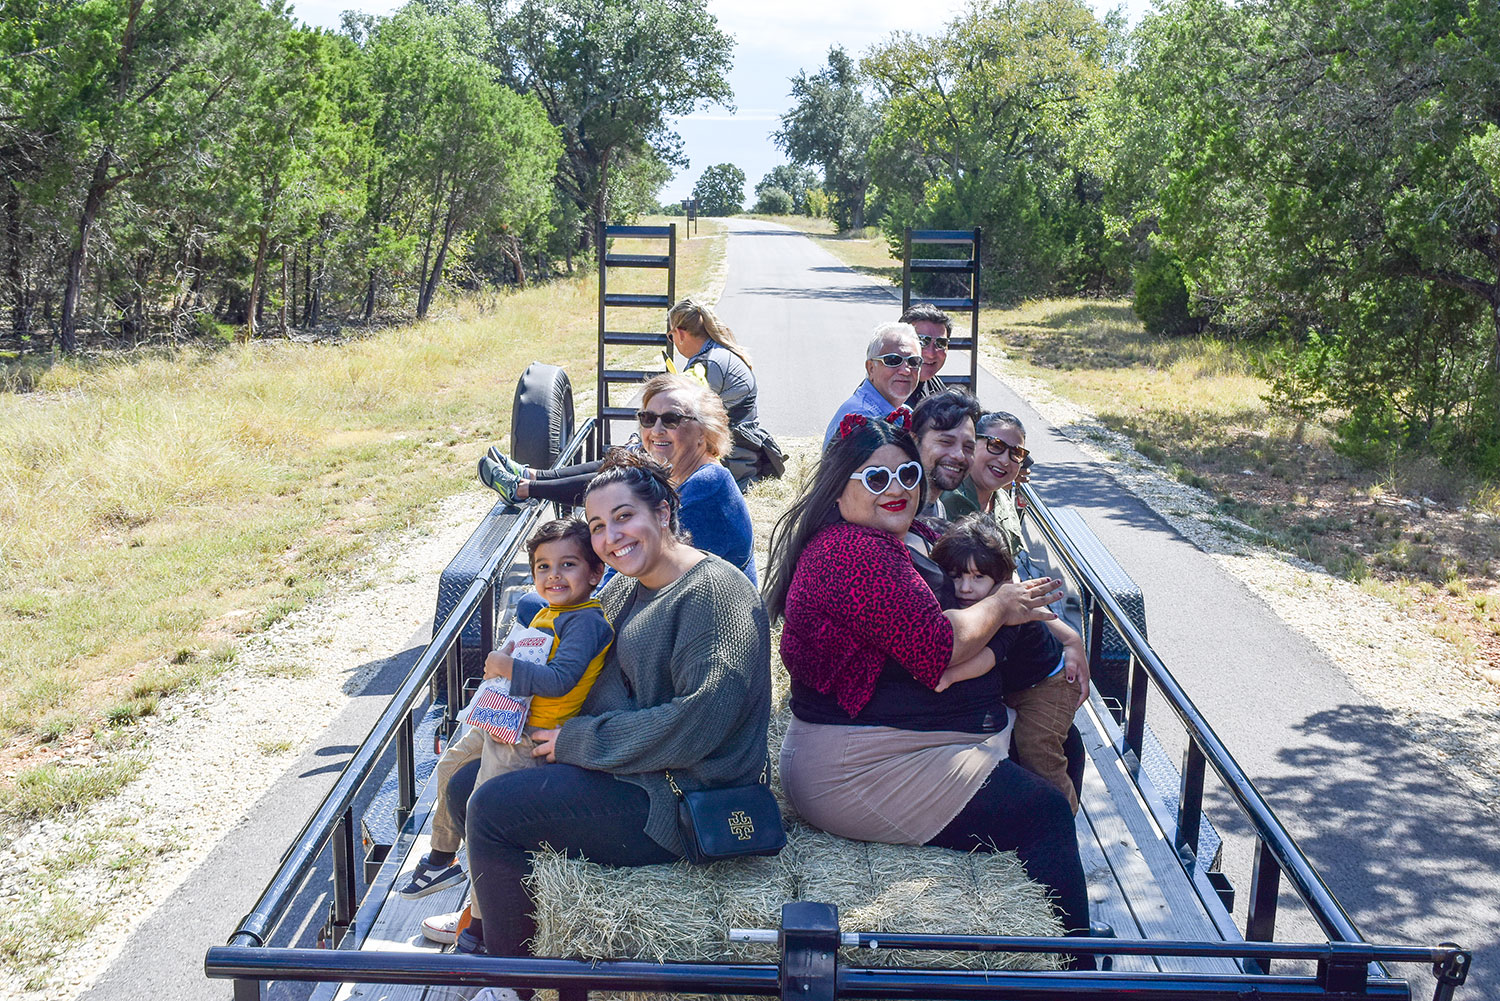 Group of people riding in a hayride at Hay Day at Garey Park